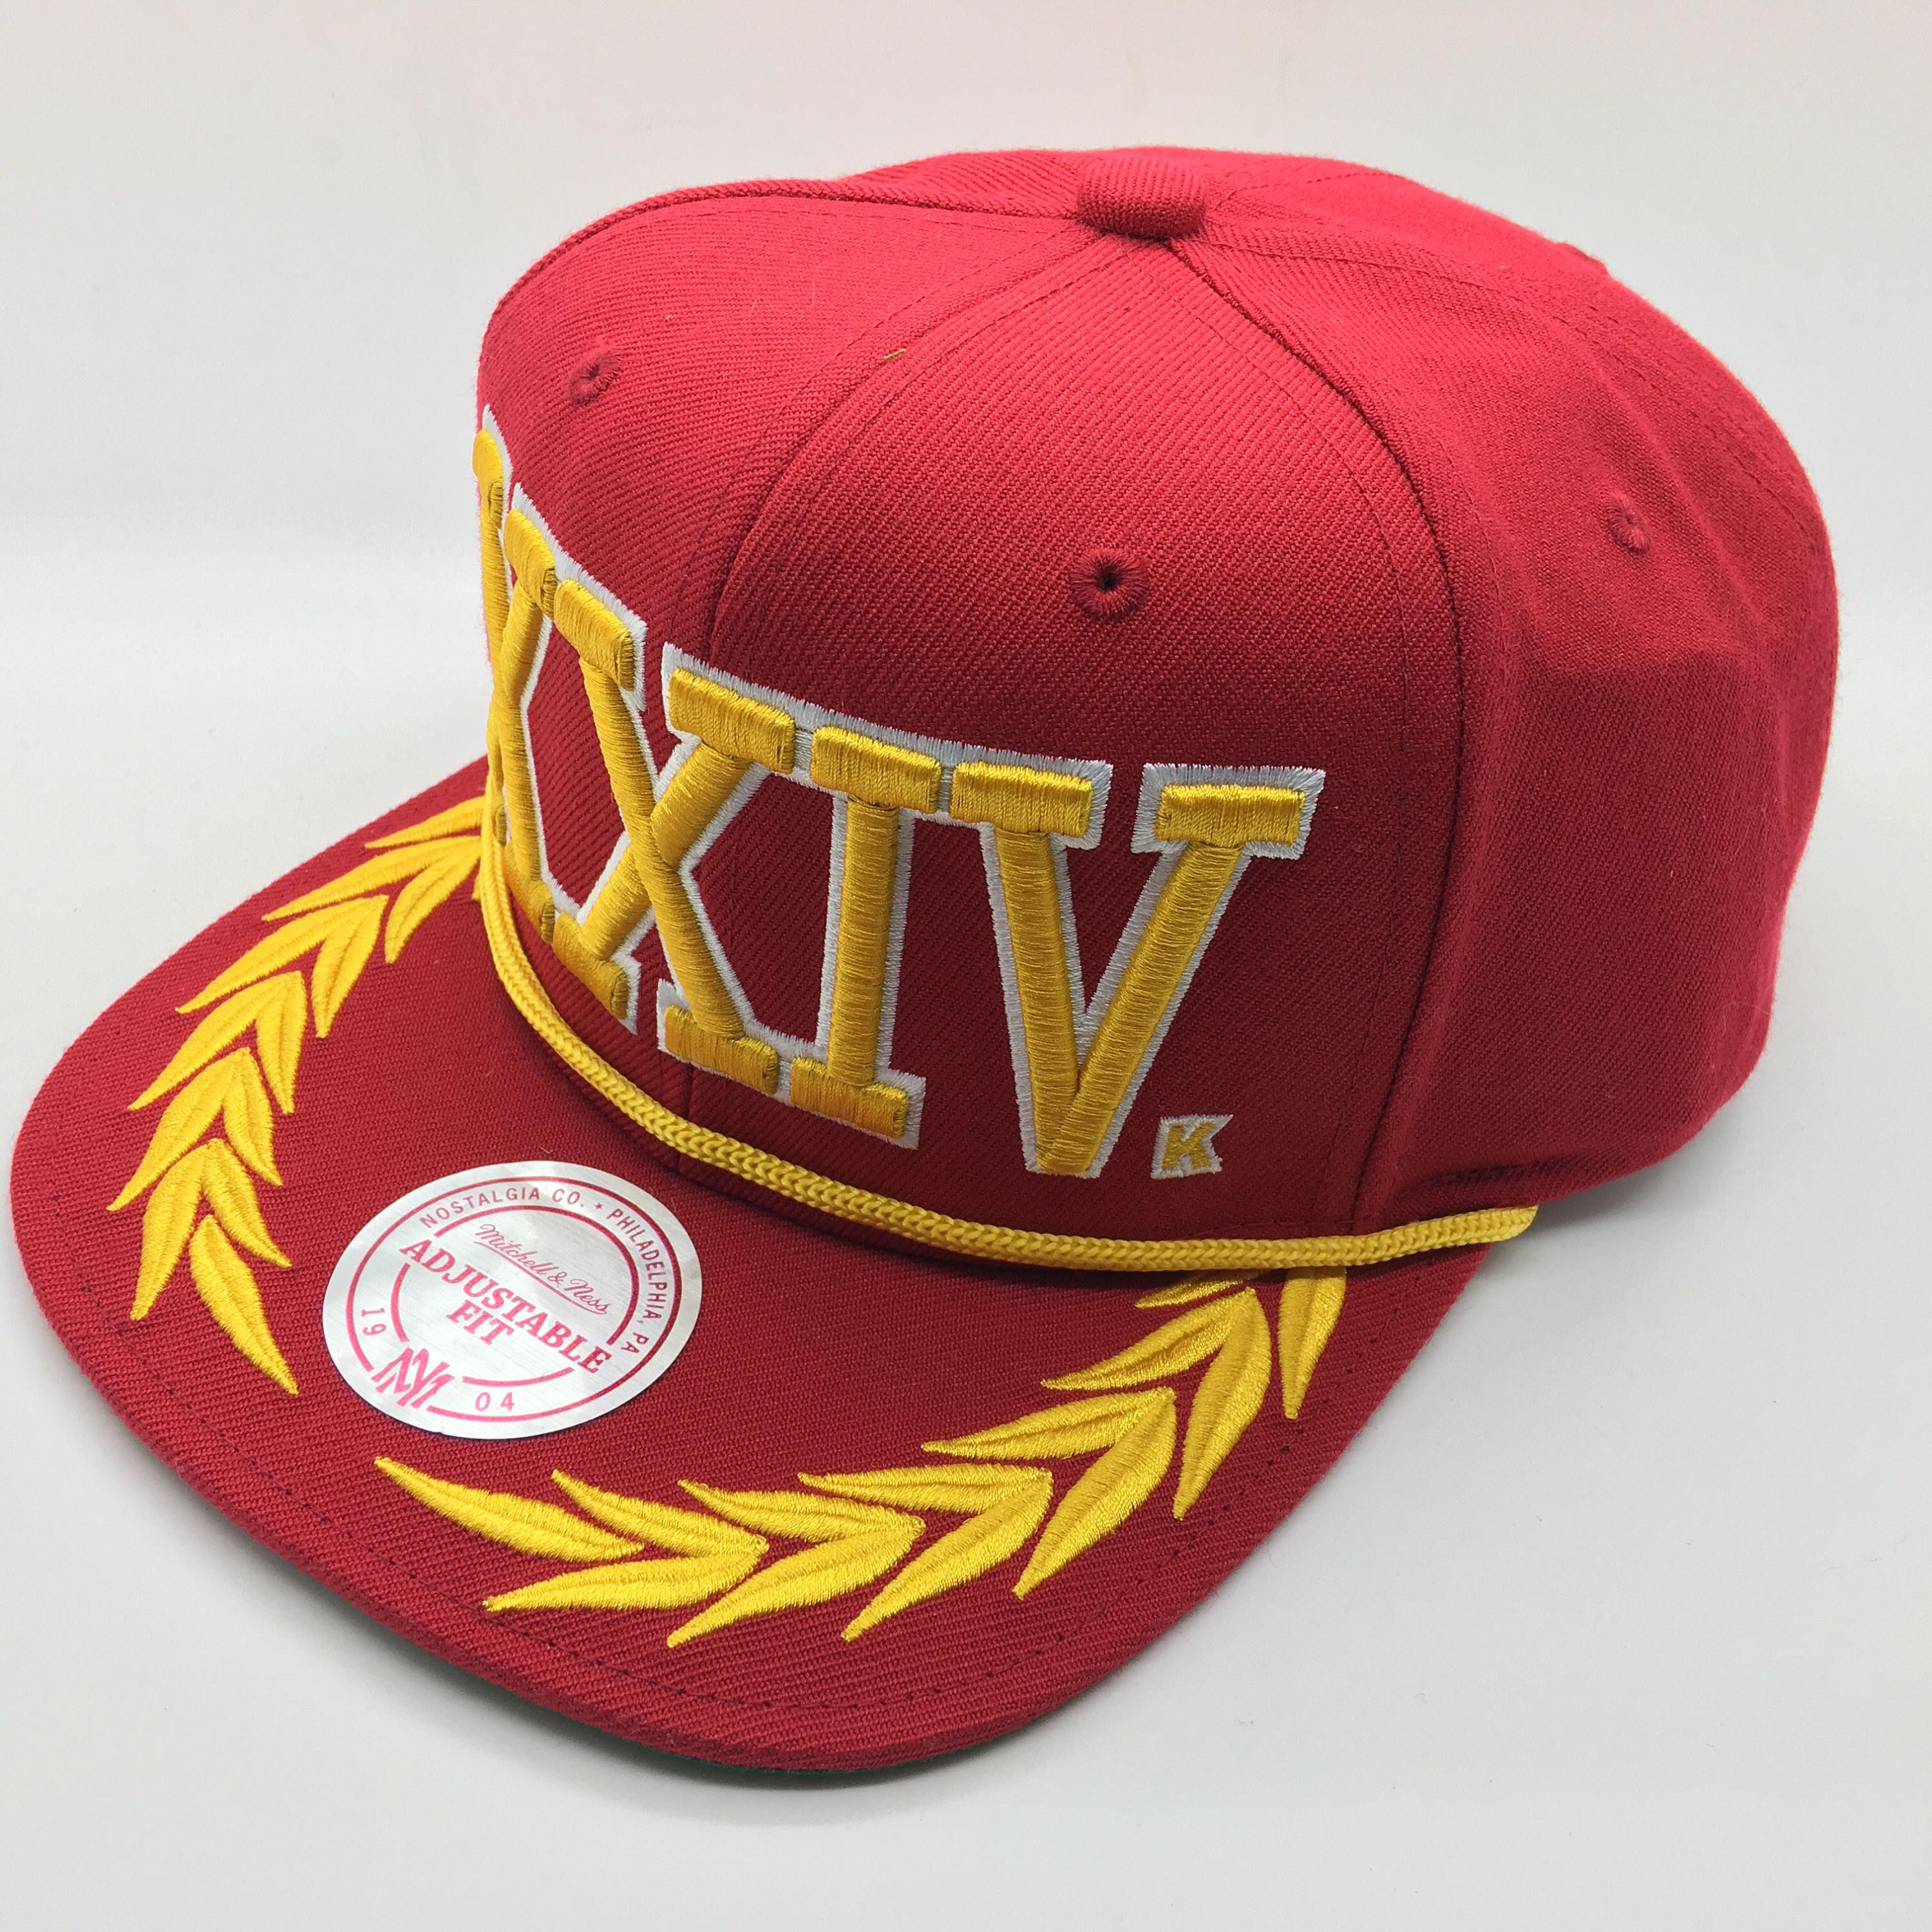 789122af3d3 RARE Bruno Mars Exclusive 24K XXIV Magic Tour Mitchell   Ness Red Snapback  Hat by MadFresh on Etsy